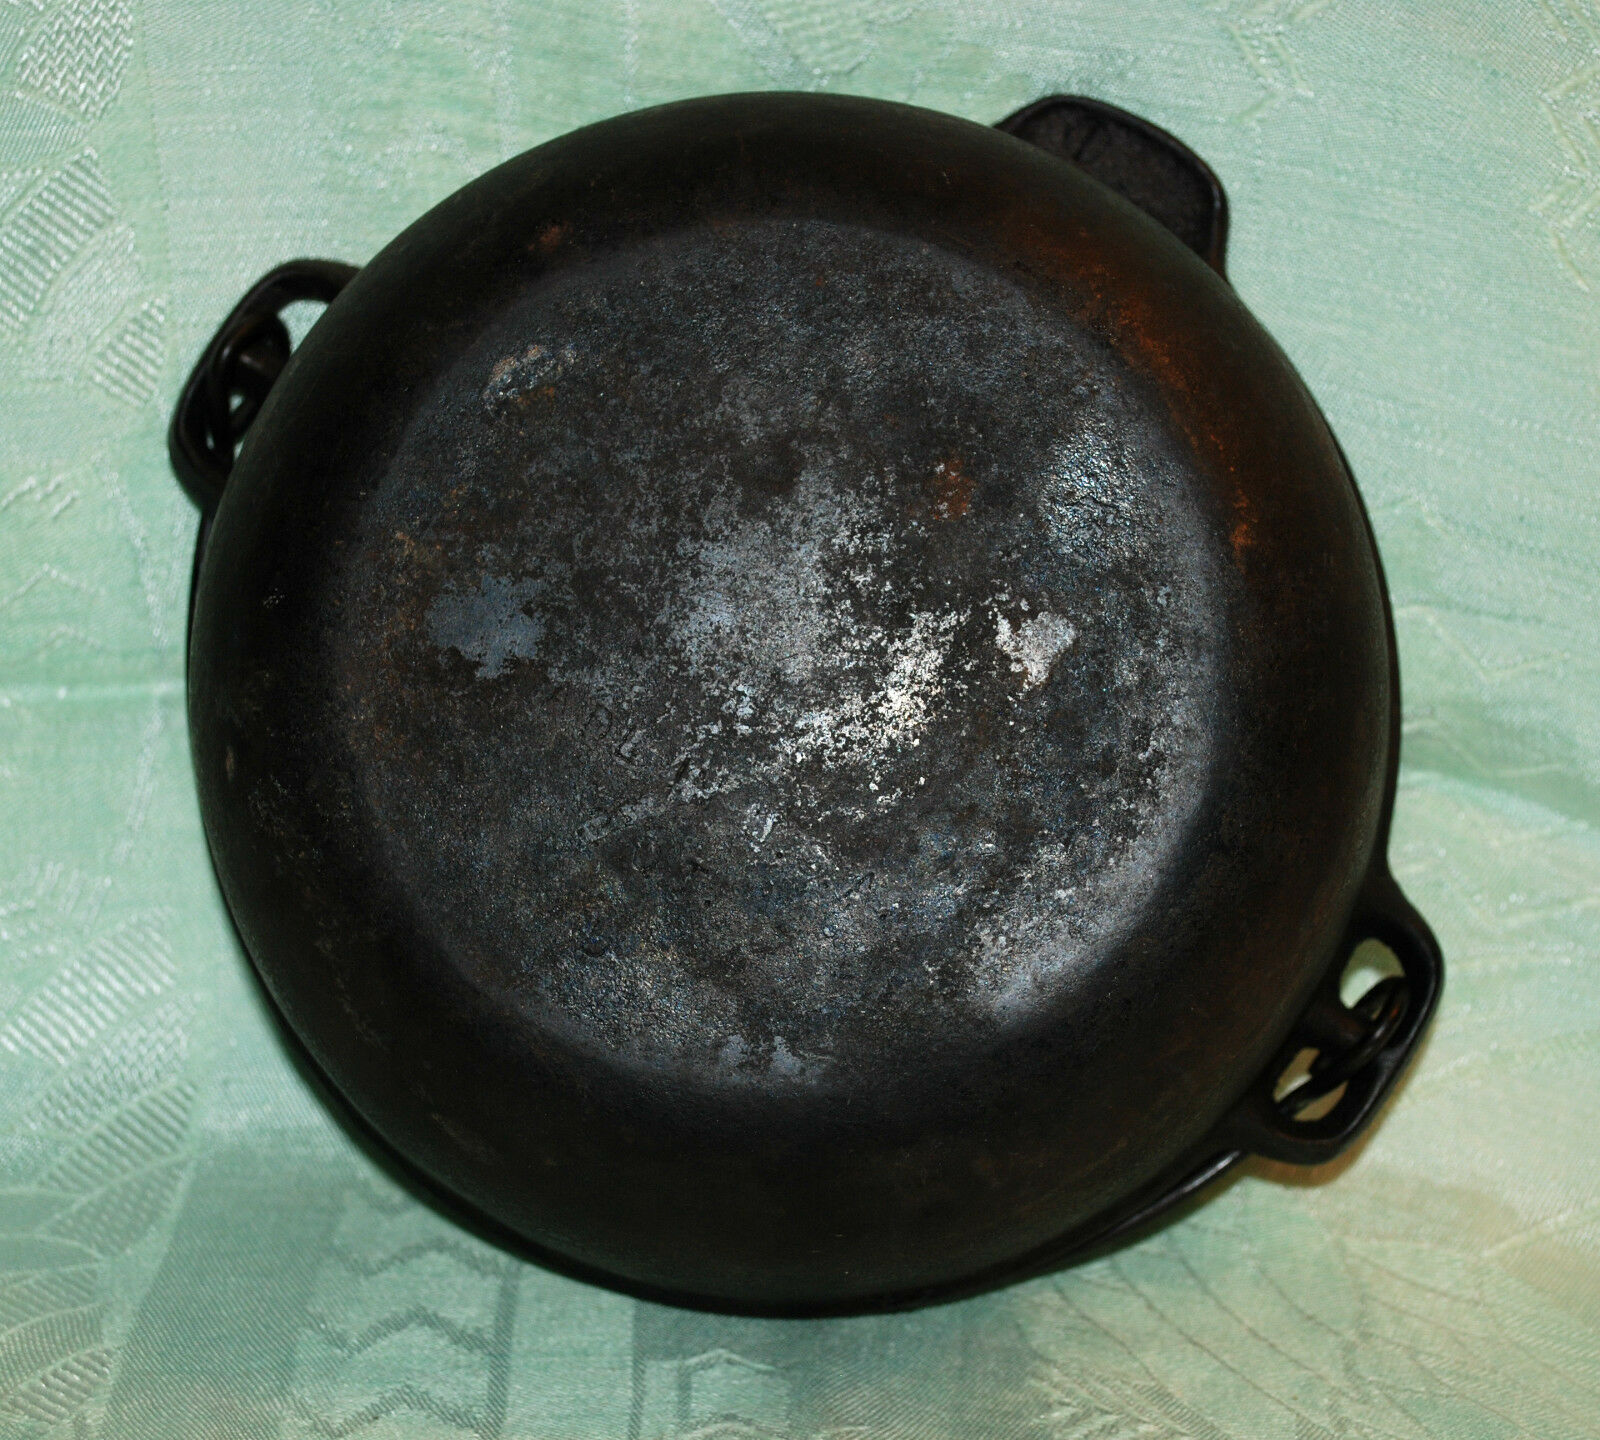 VINTAGE CAST IRON BEAN POT KETTLE CAULDRON & BAIL MADE IN USA 3 QUART SIZE MARK